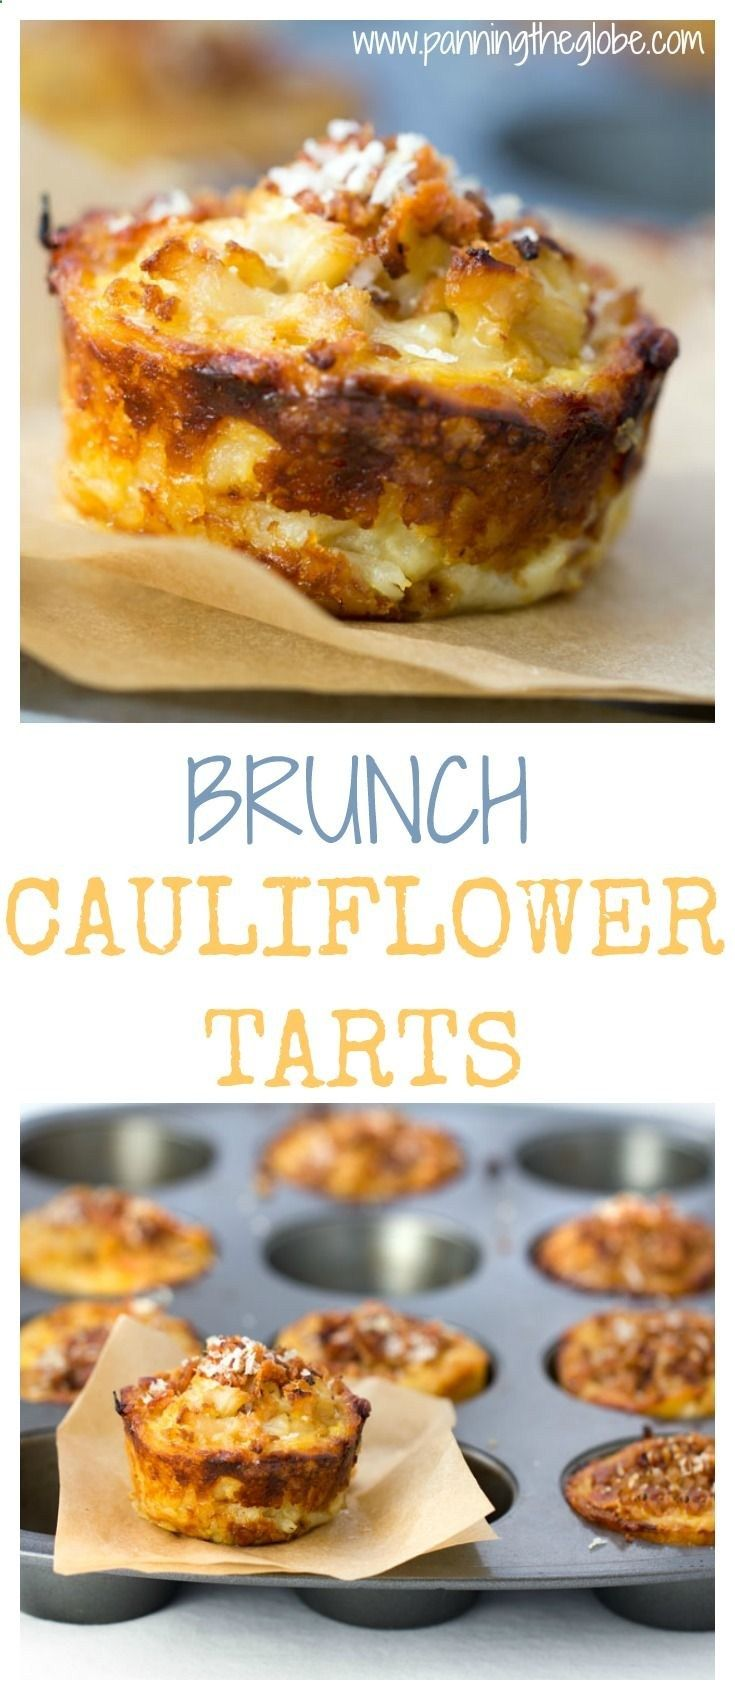 These cauliflower tarts are amazing little flavor bombs: potato-gruyere crusts filled with onions, garlic, cauliflower, eggs, cheese, and spices, topped with bacon and parmesan. A perfect recipe for a special brunch, with an easy vegetarian adaptation.